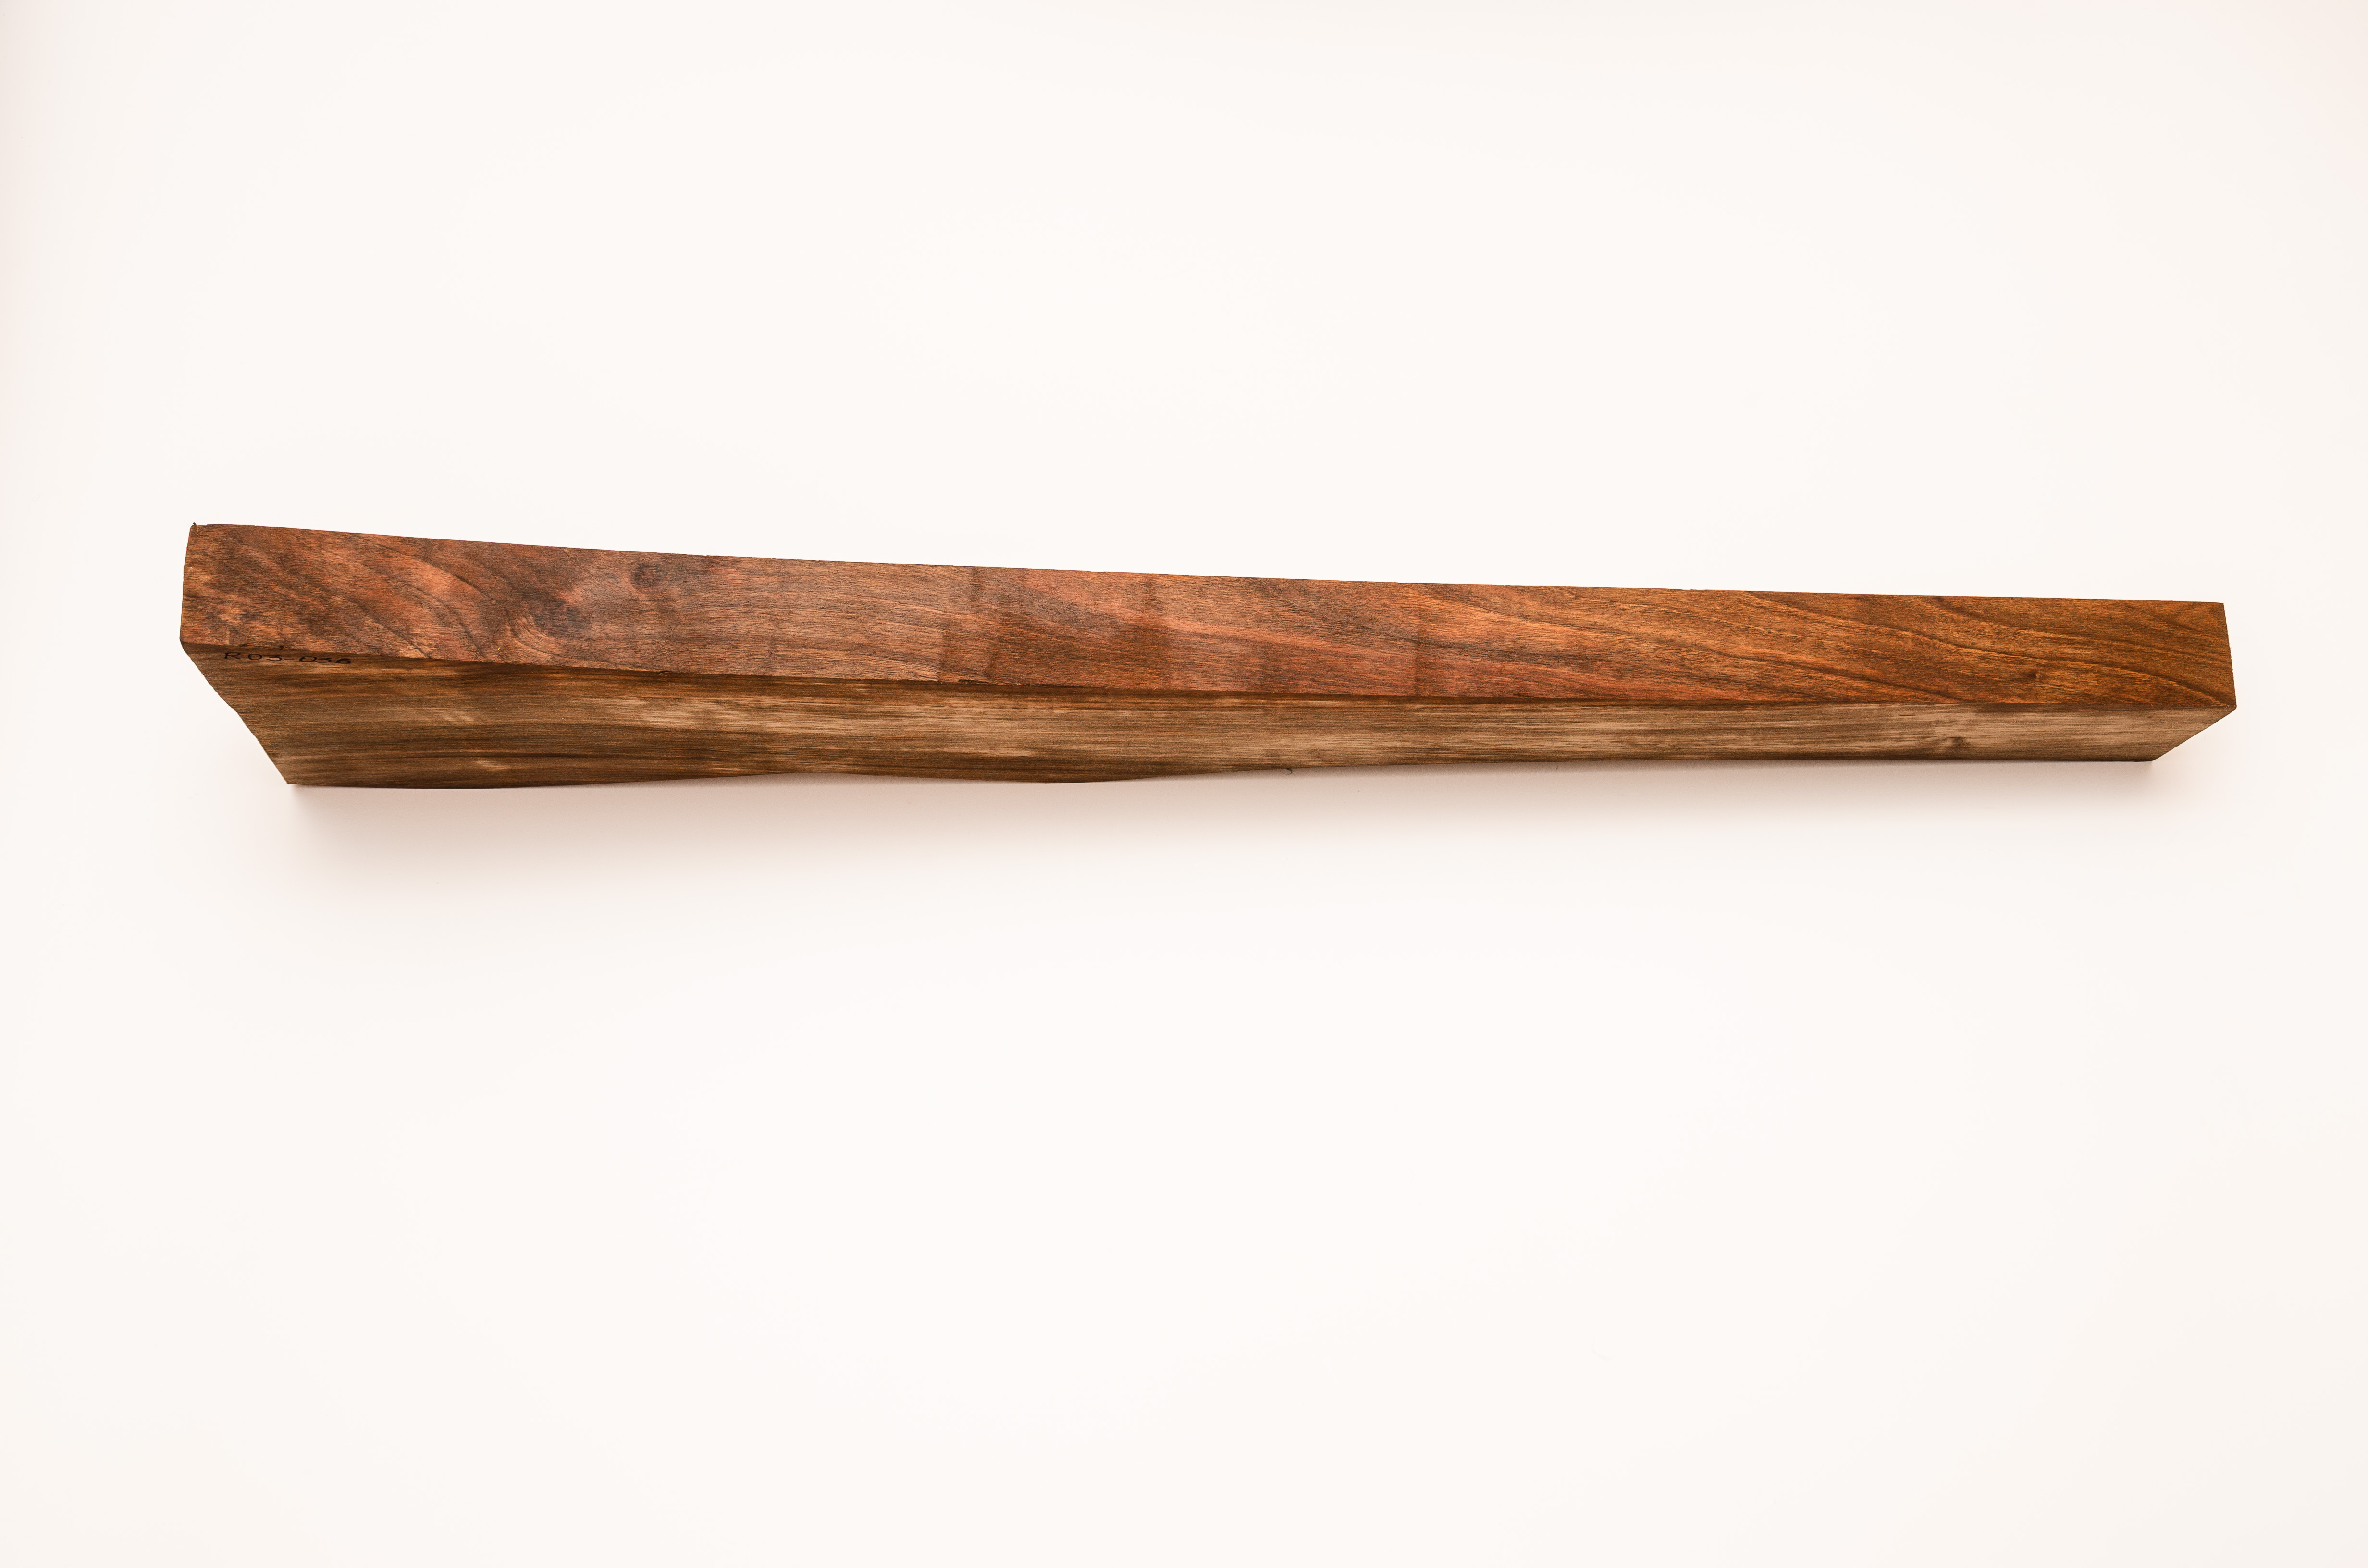 walnut_stock_blanks_for_guns_and_rifles-1165